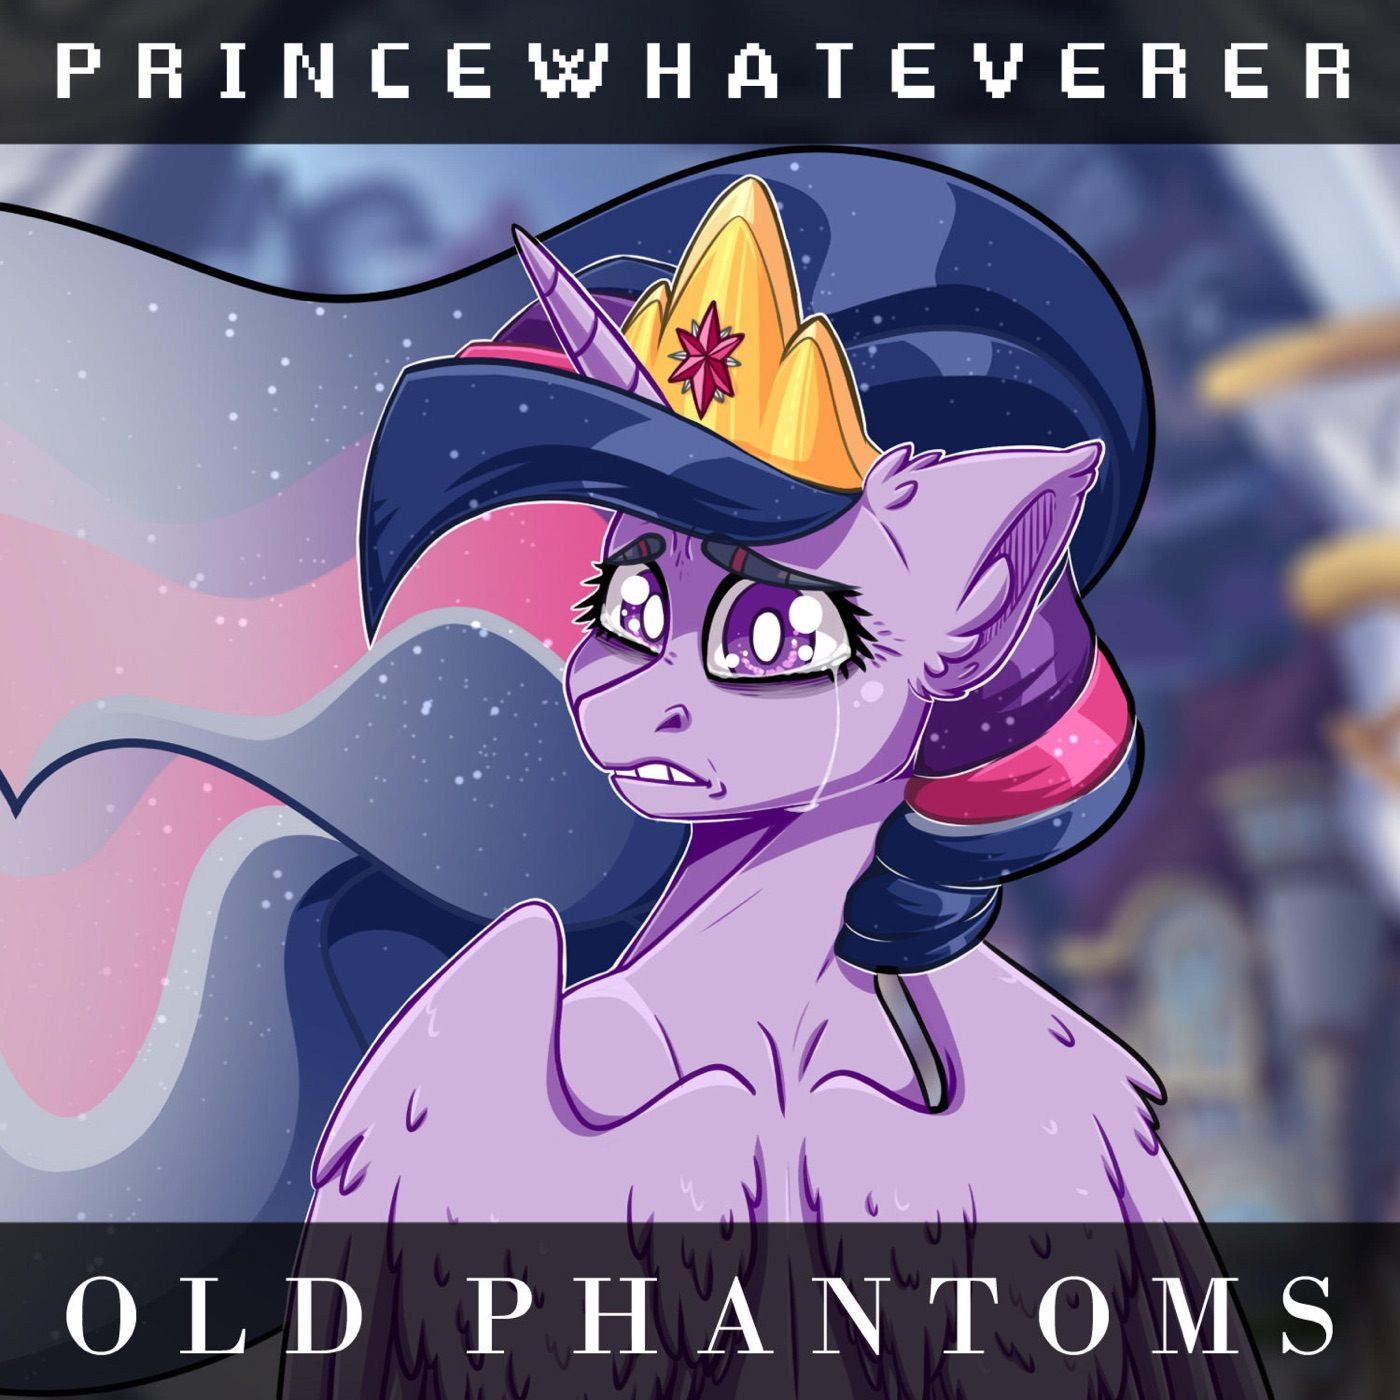 PrinceWhateverer - Old Phantoms [single] (2020)